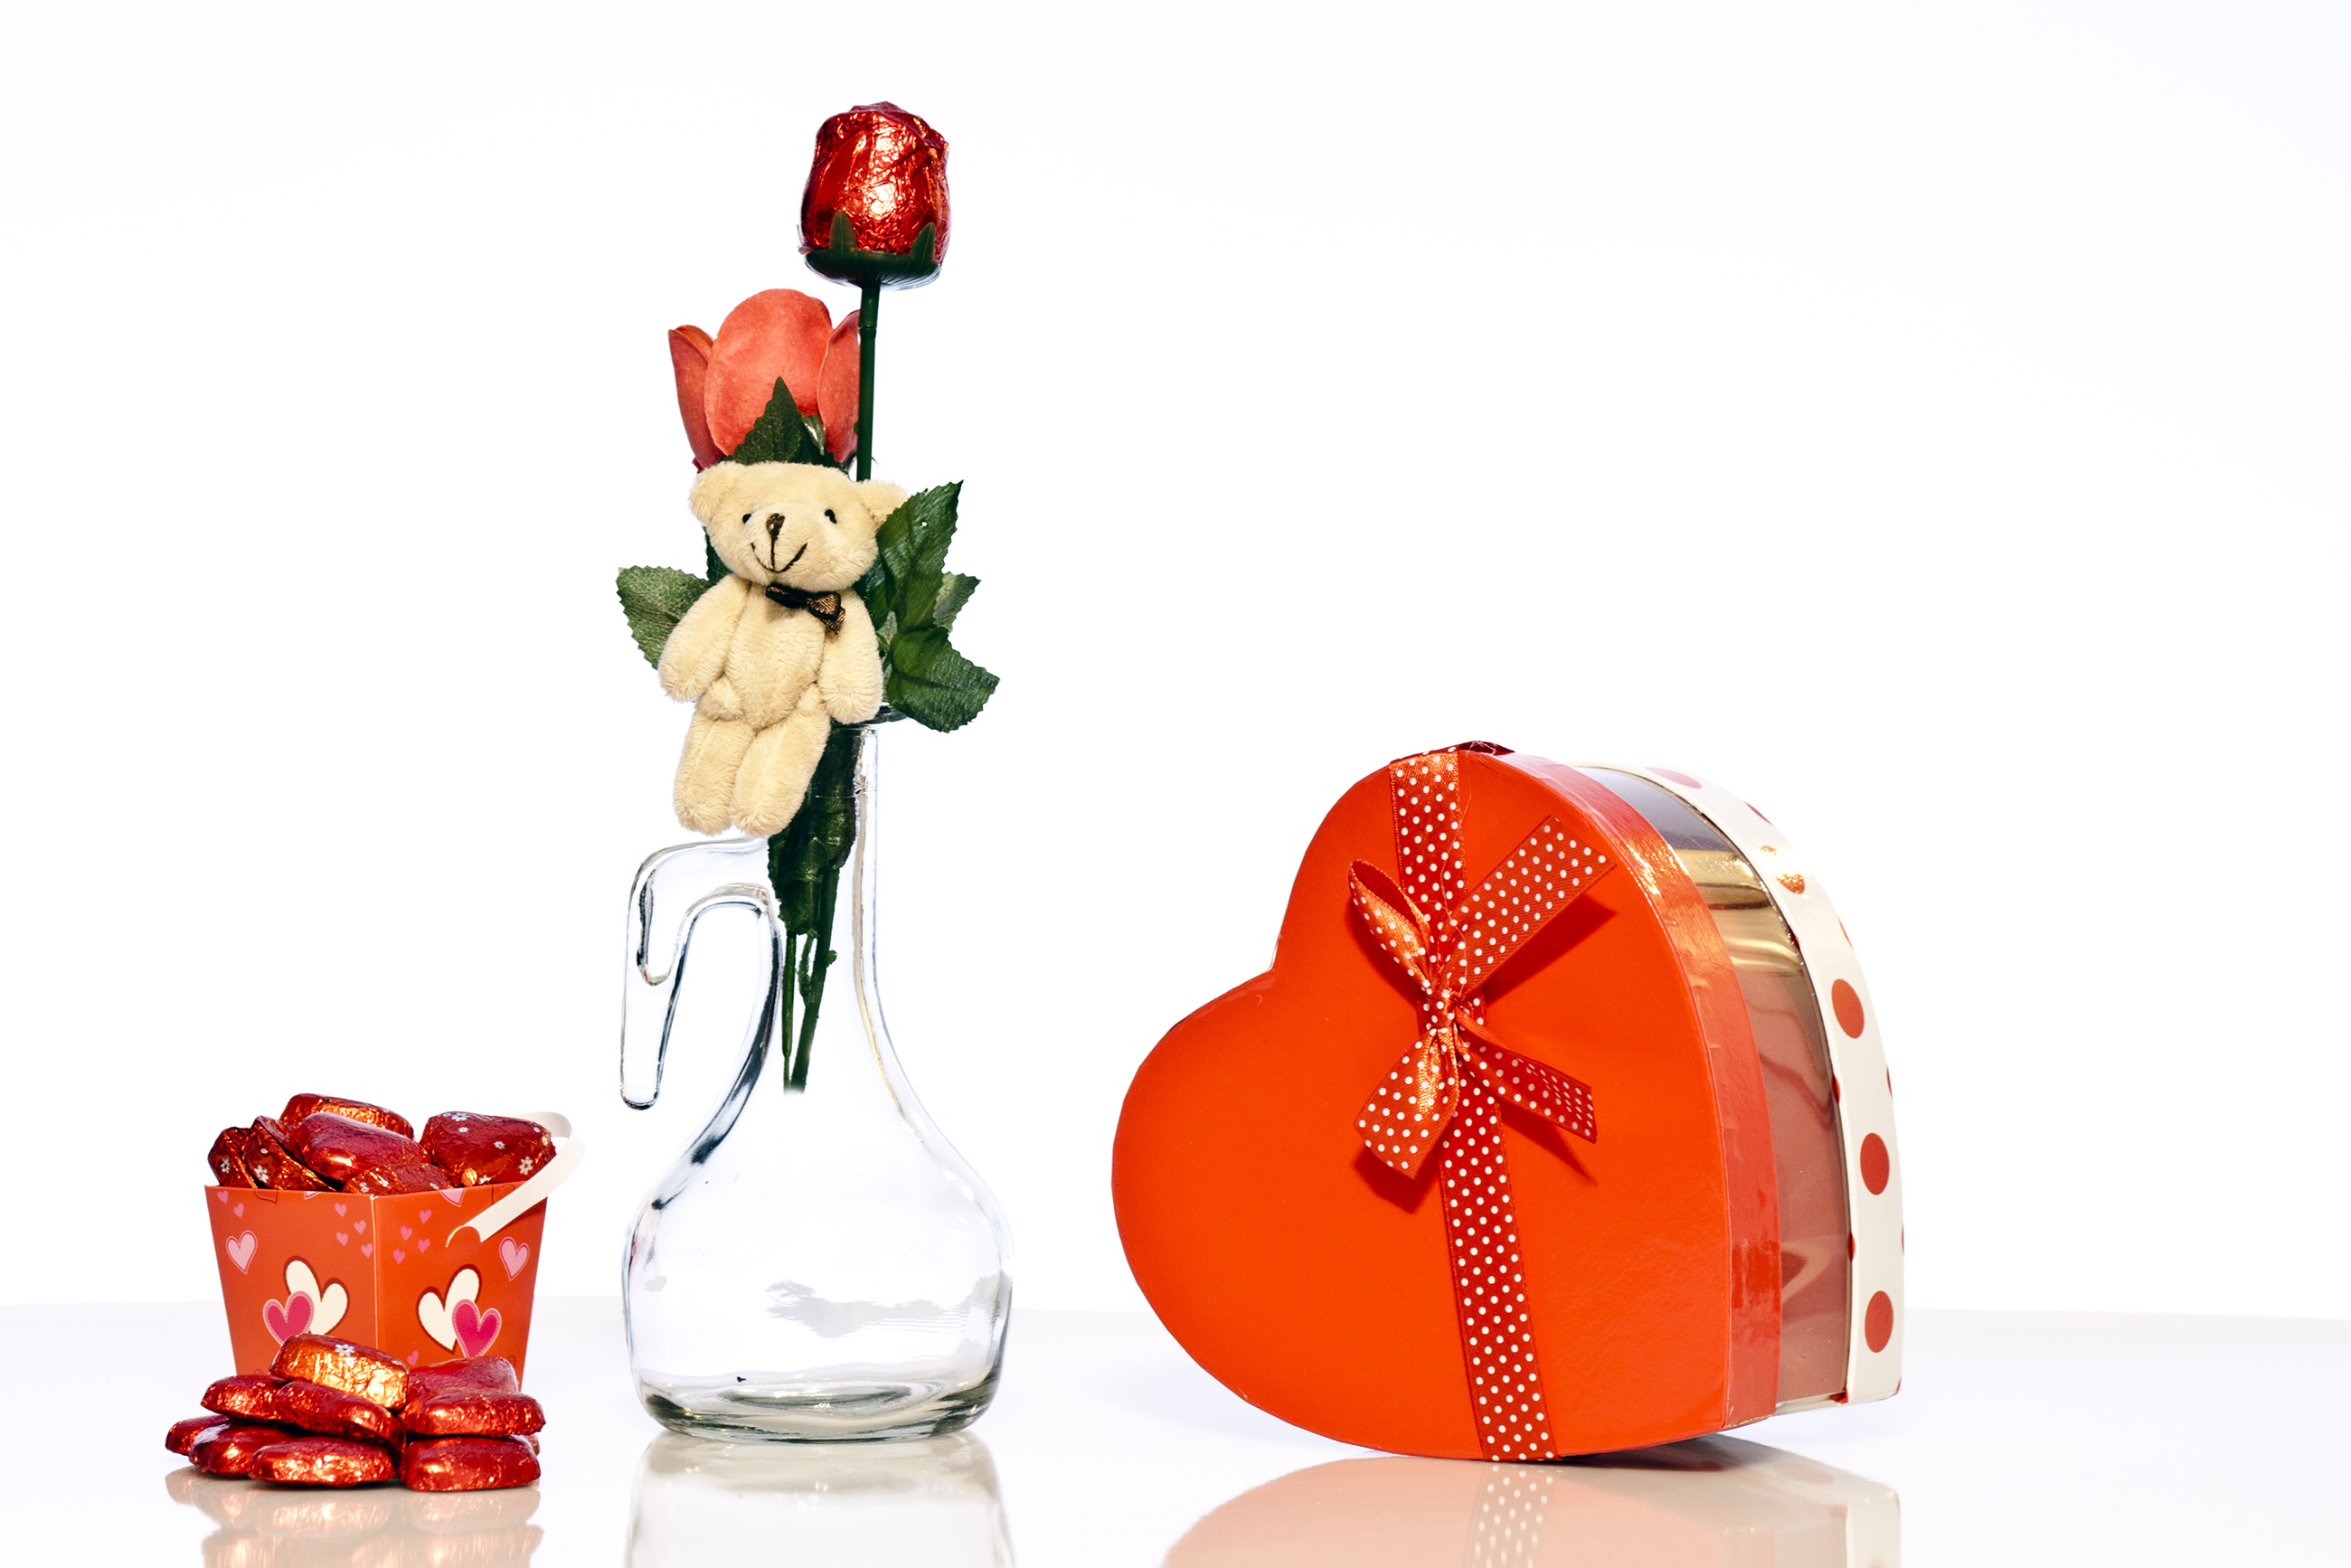 Gifts for Valentines Day, Affection, Romantic, Package, Paper, HQ Photo